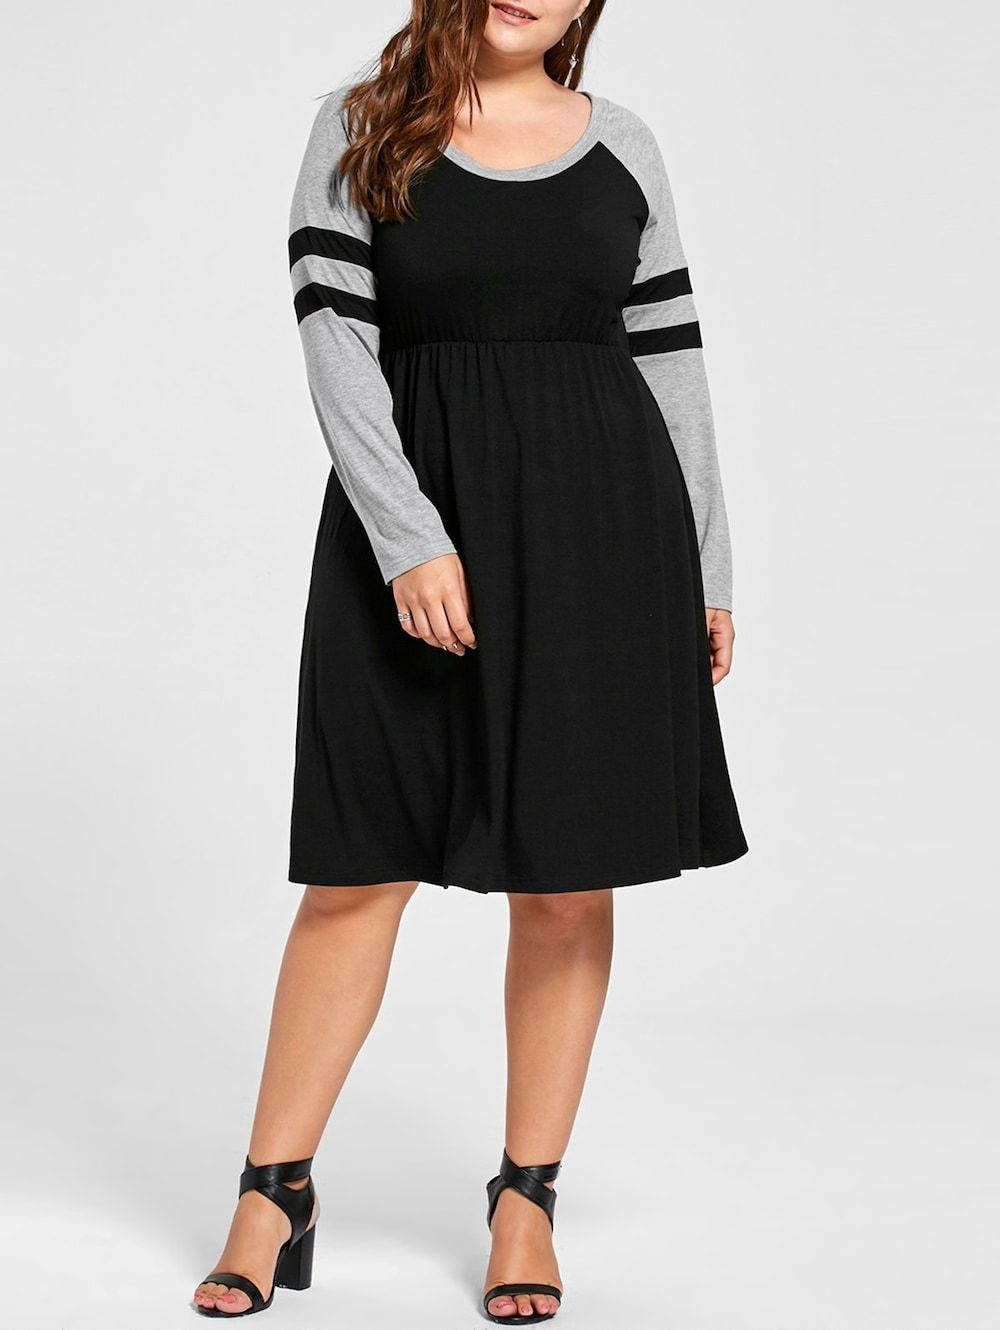 Plus Size Long Sleeve Skater Dress Black Church Clothes And Long